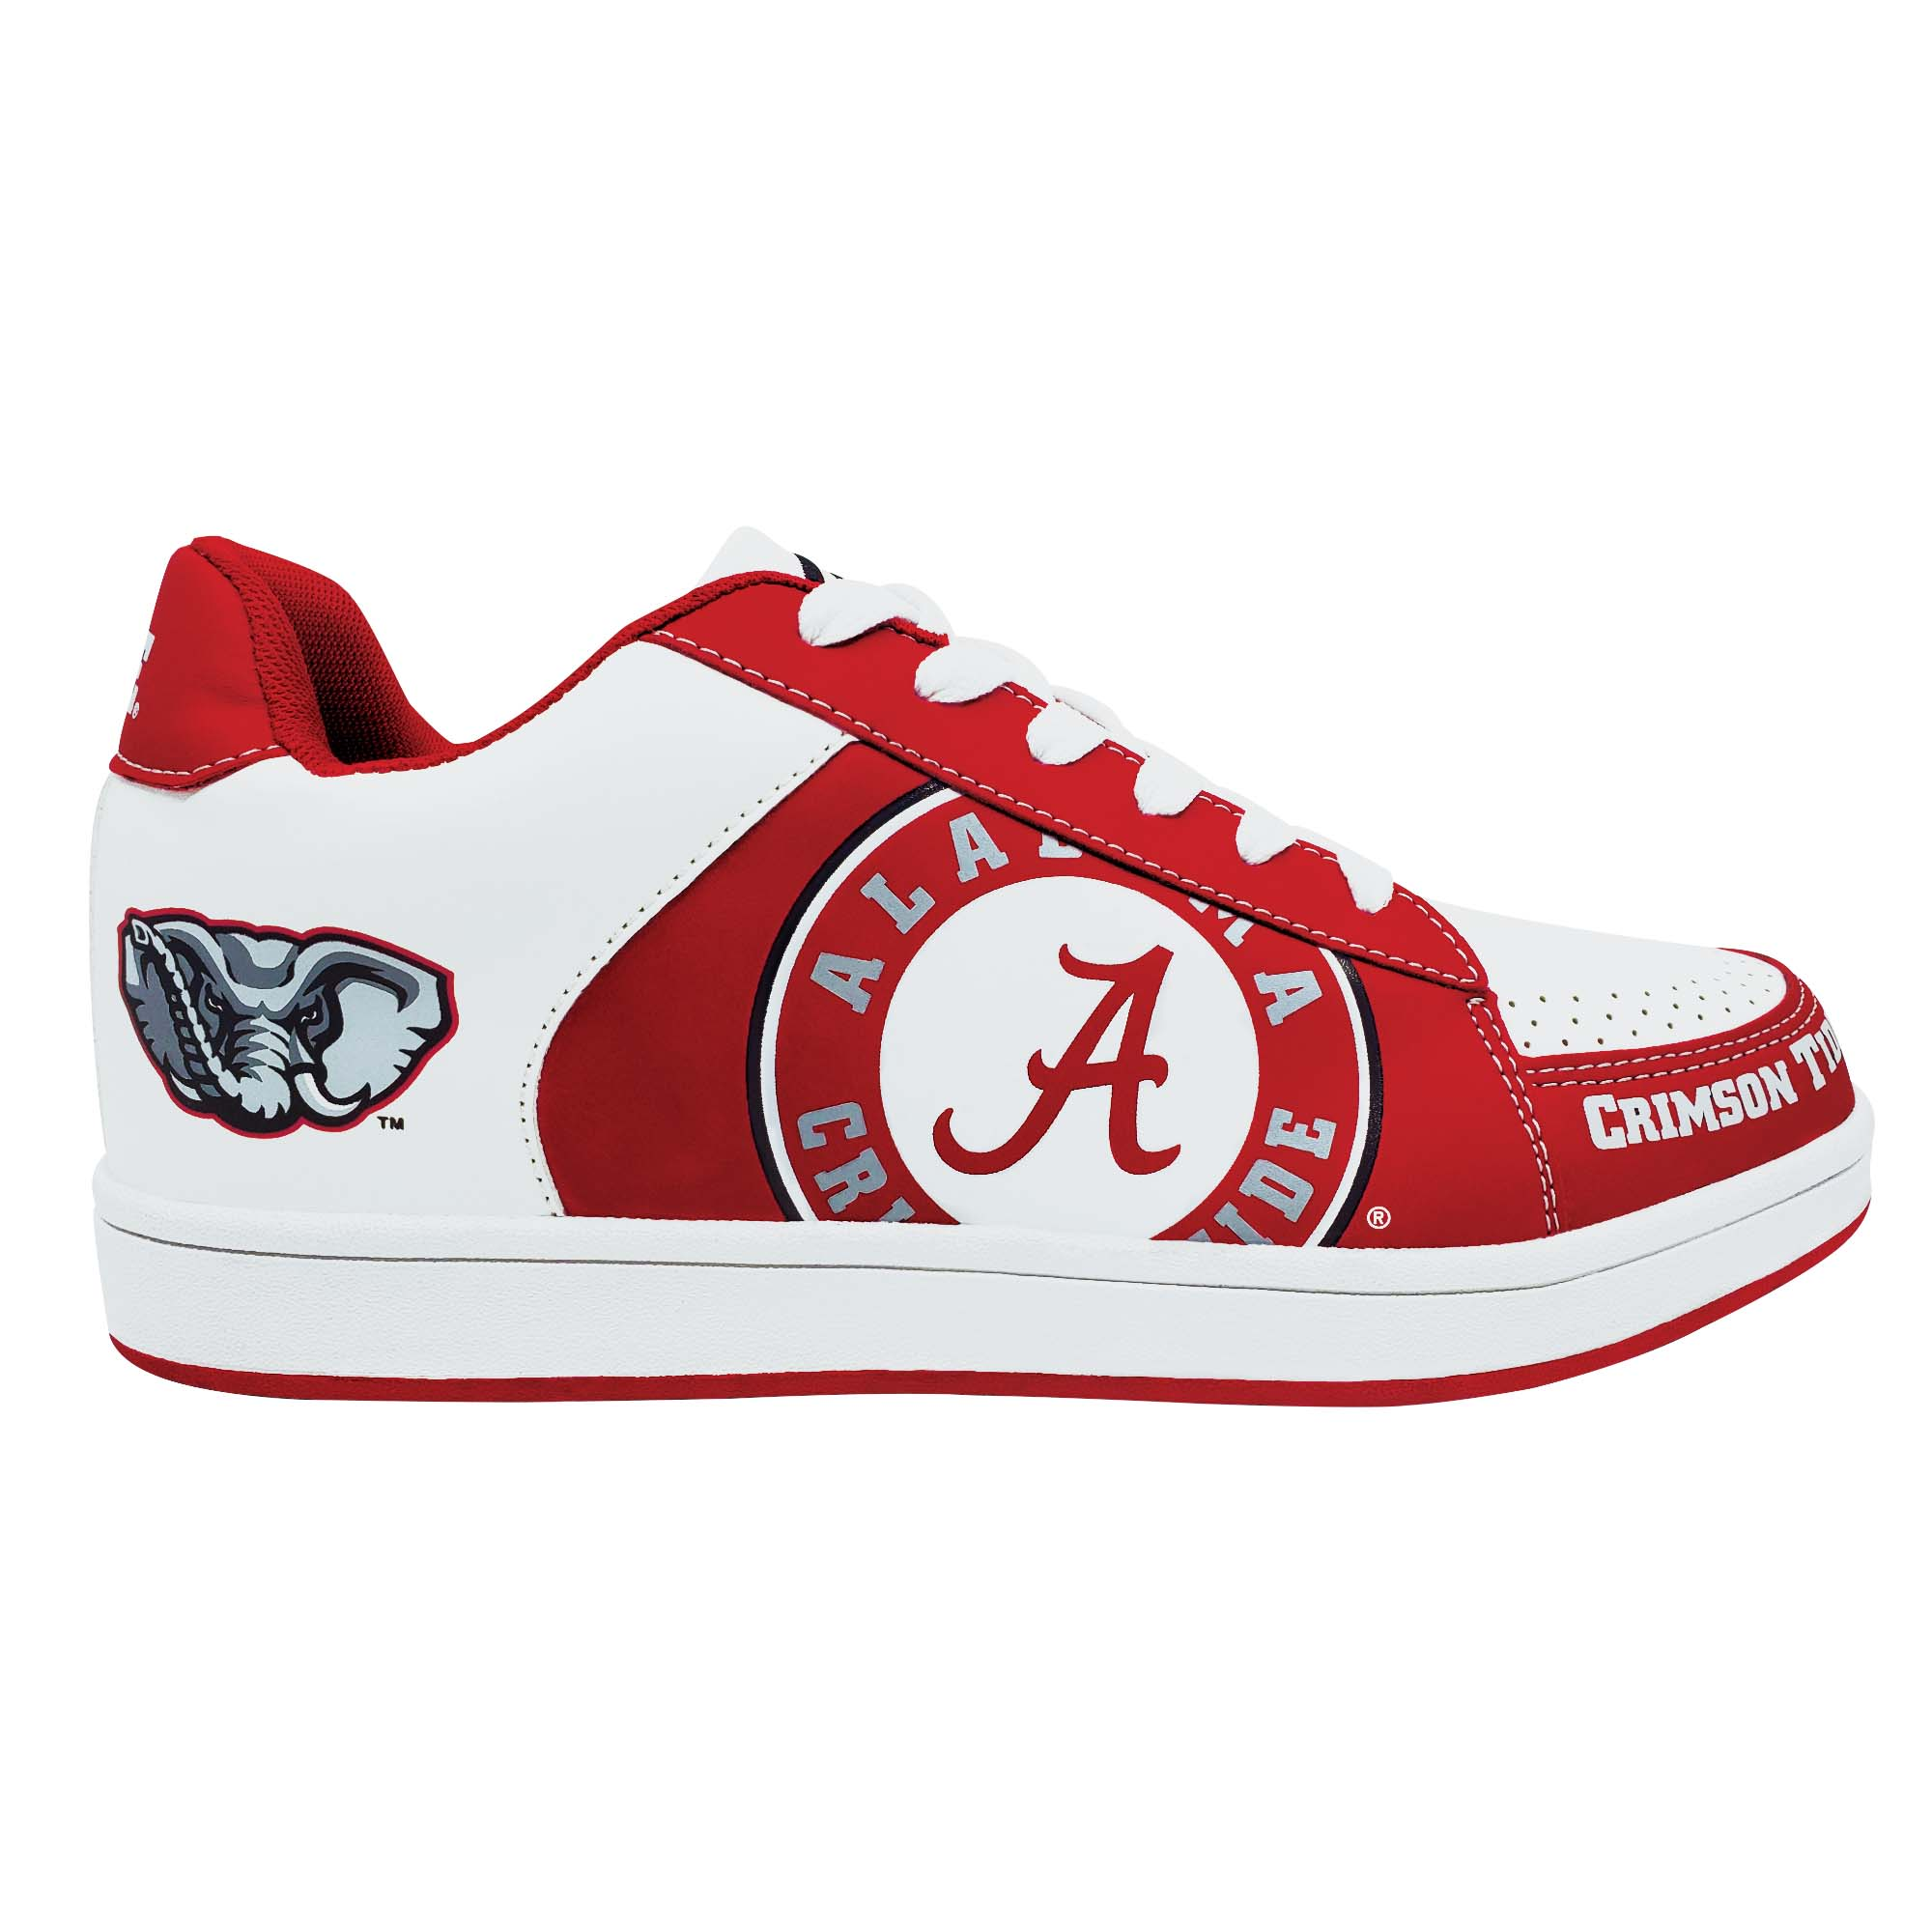 Item: A sneaker with a big al logo on the back and a circle A logo in front